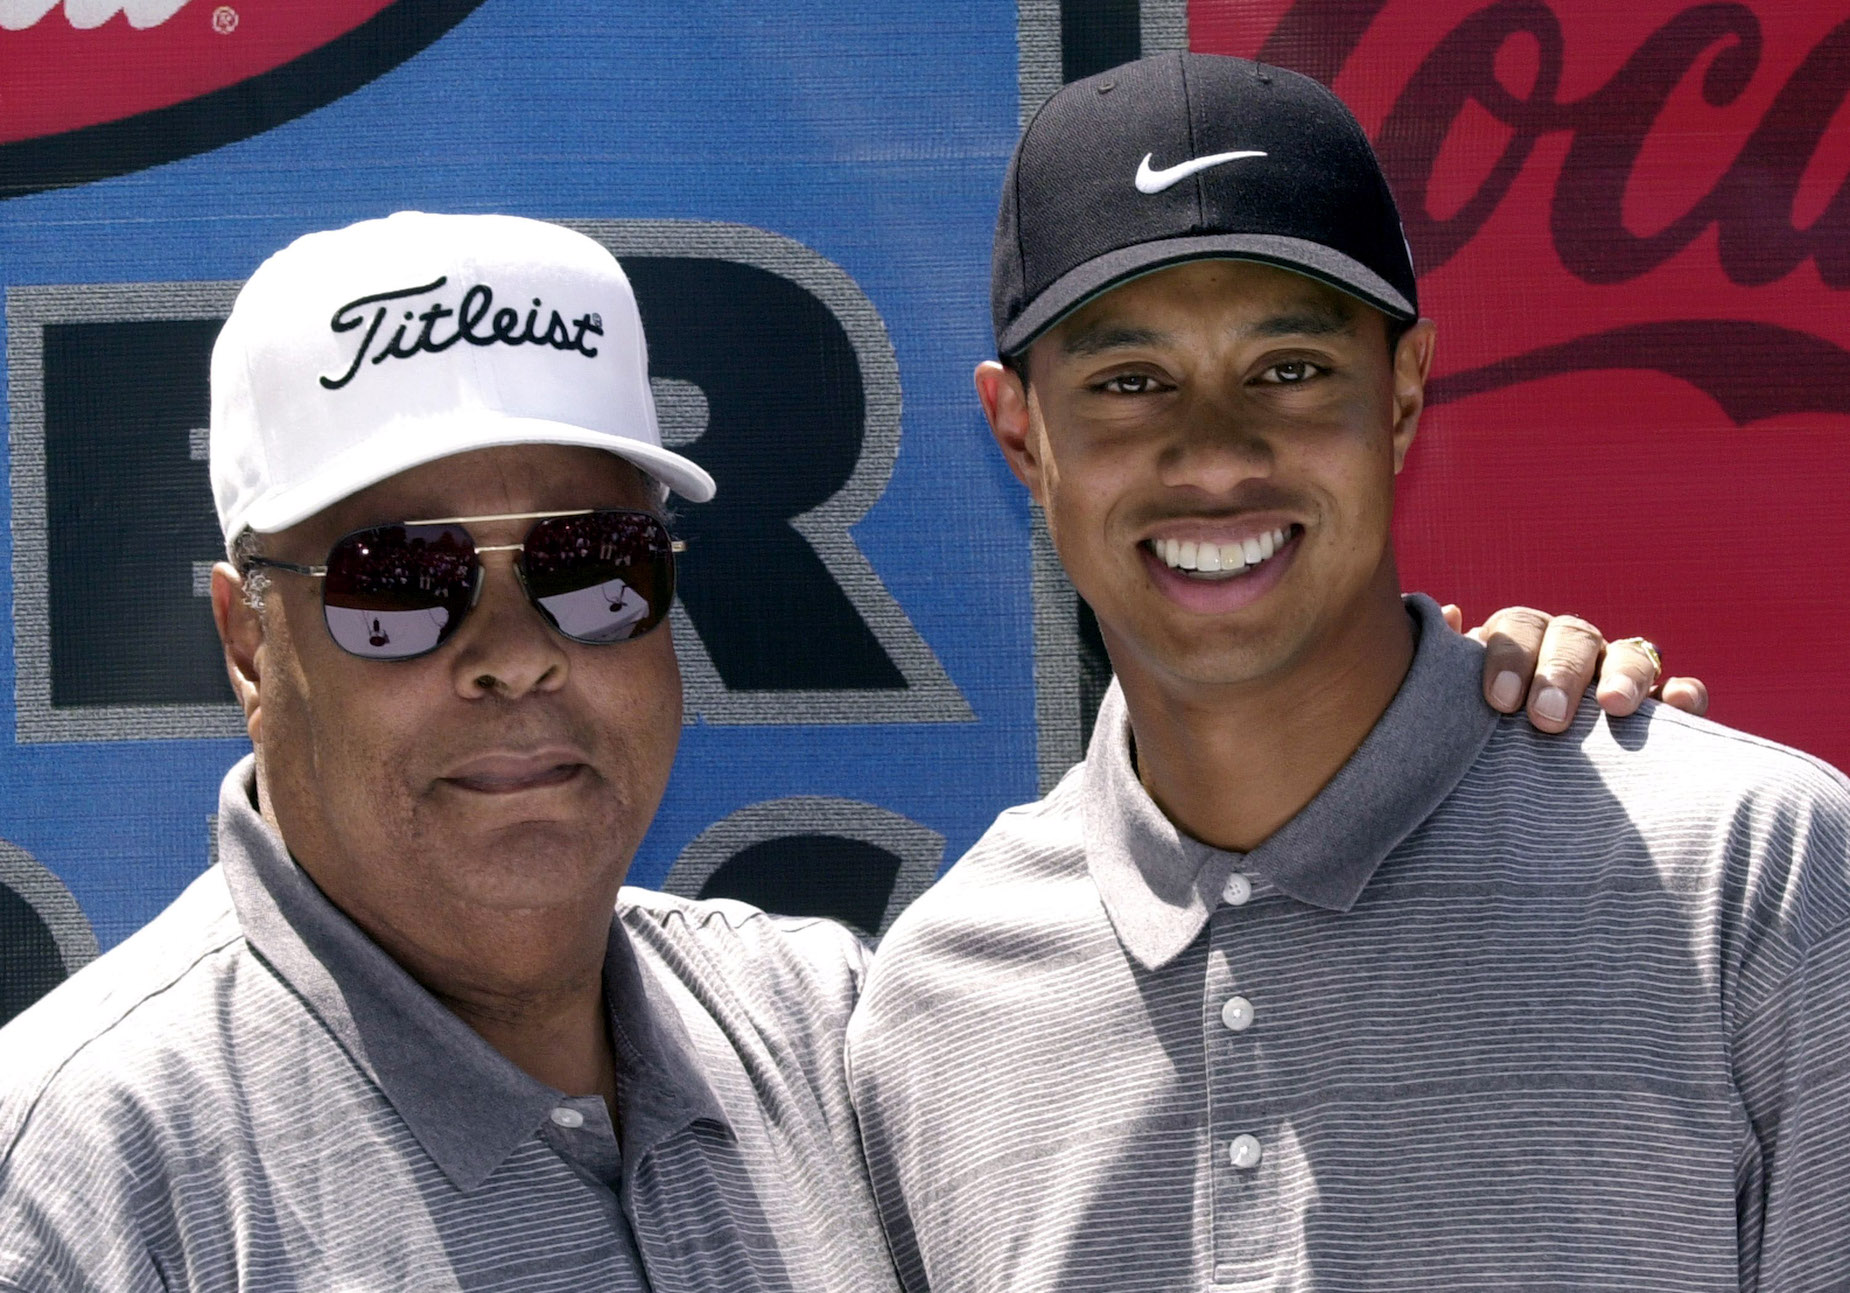 Tiger Woods is actually named after his father's long-lost buddy from Vietnam.